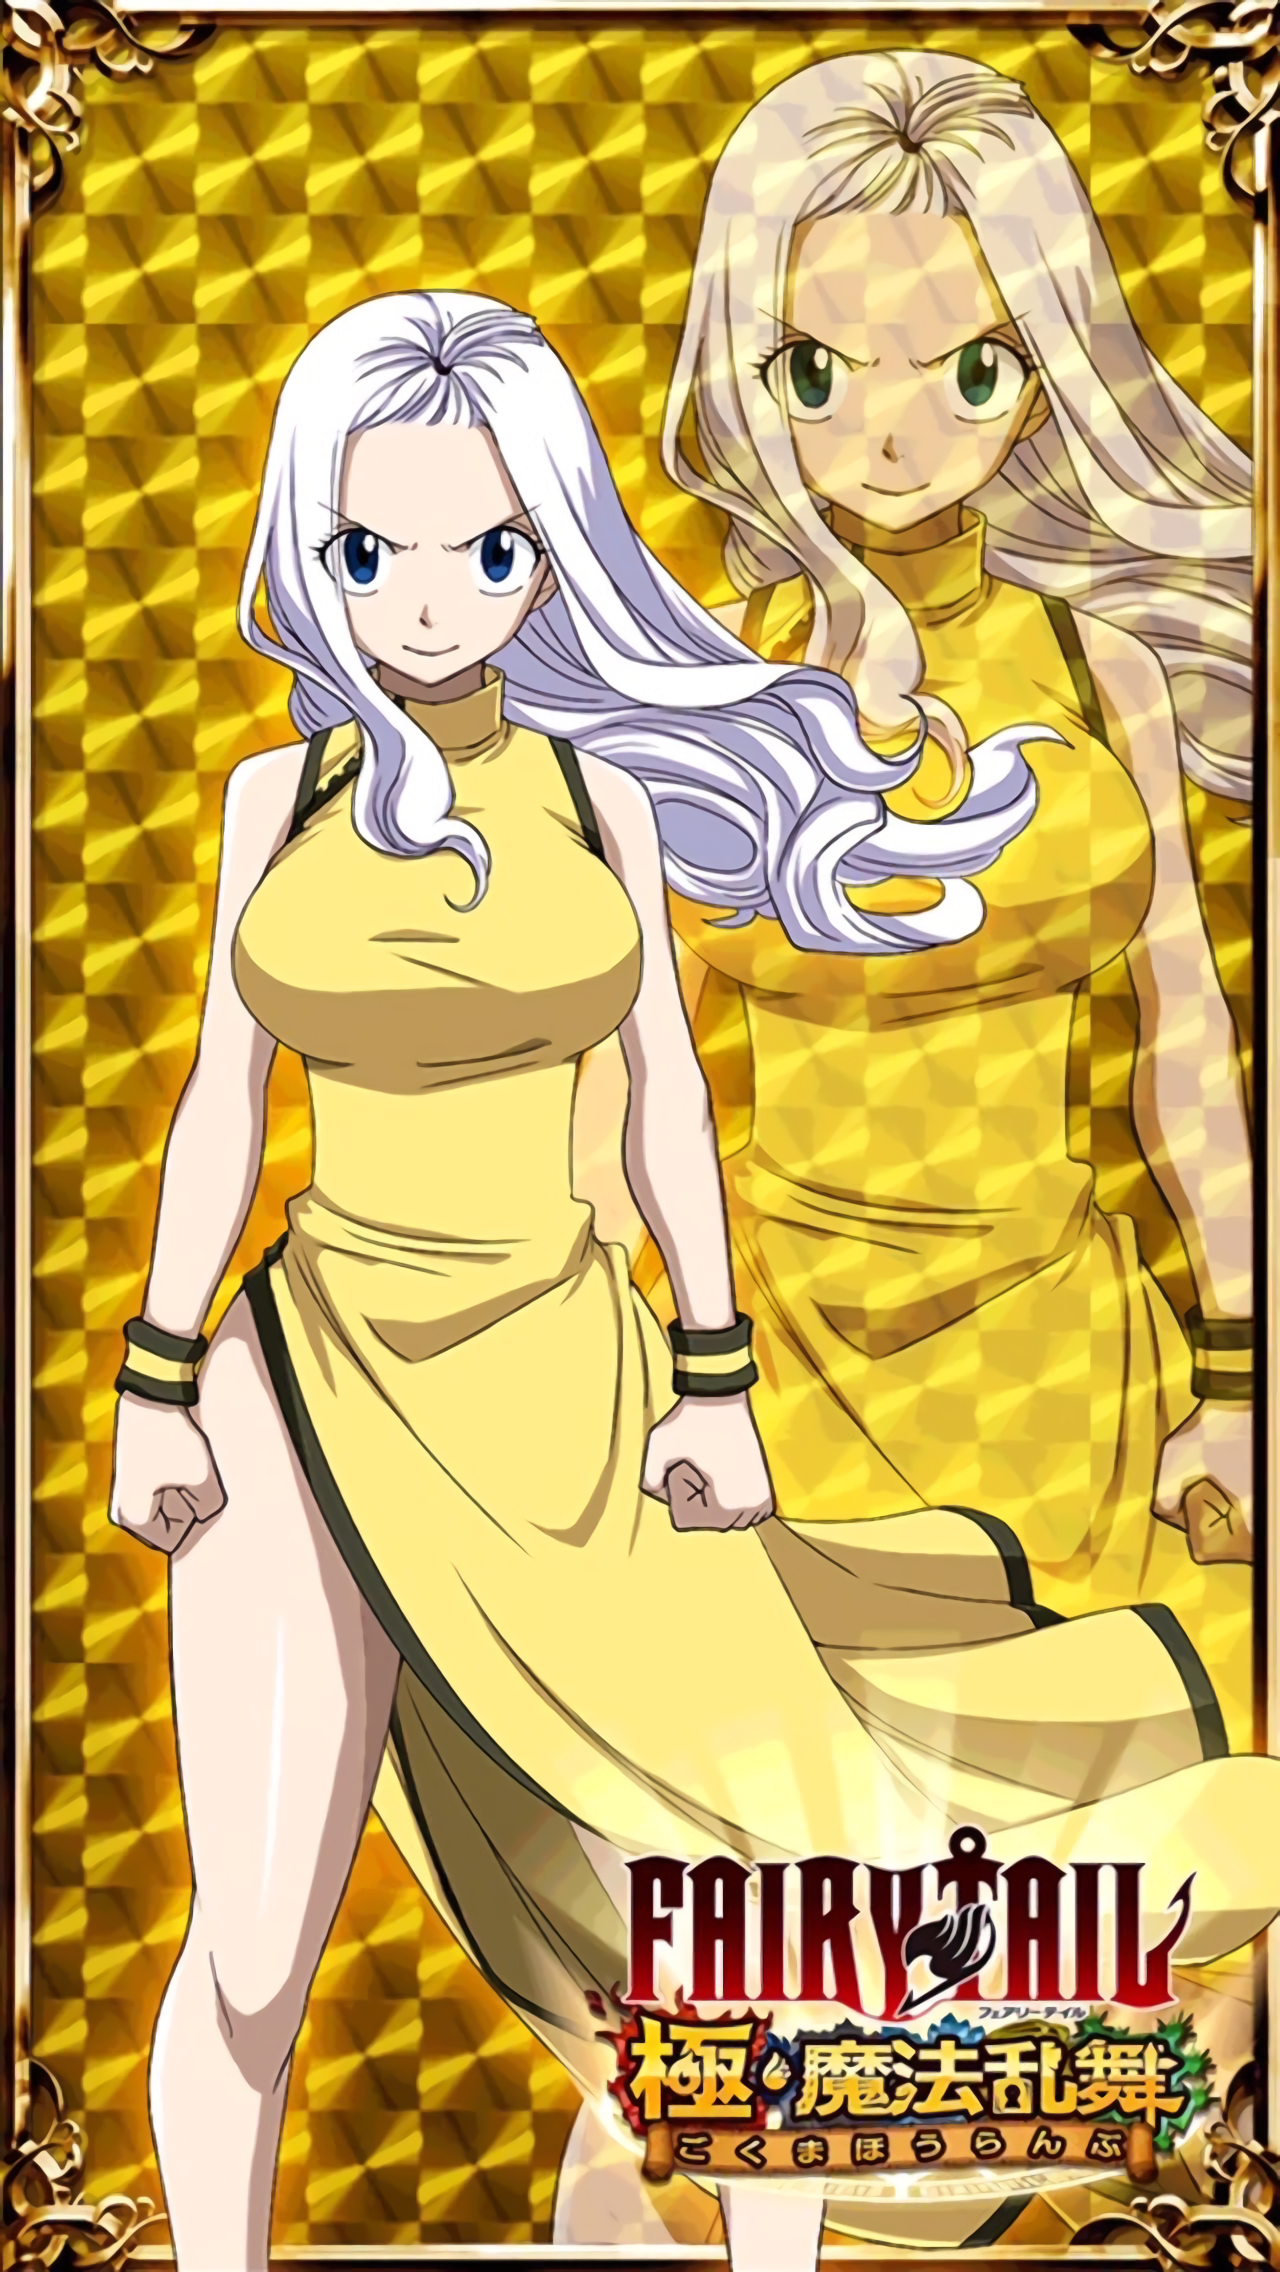 Fairy Tail Mirajane Magic : Most textures are in 2048px and some in 1024px.